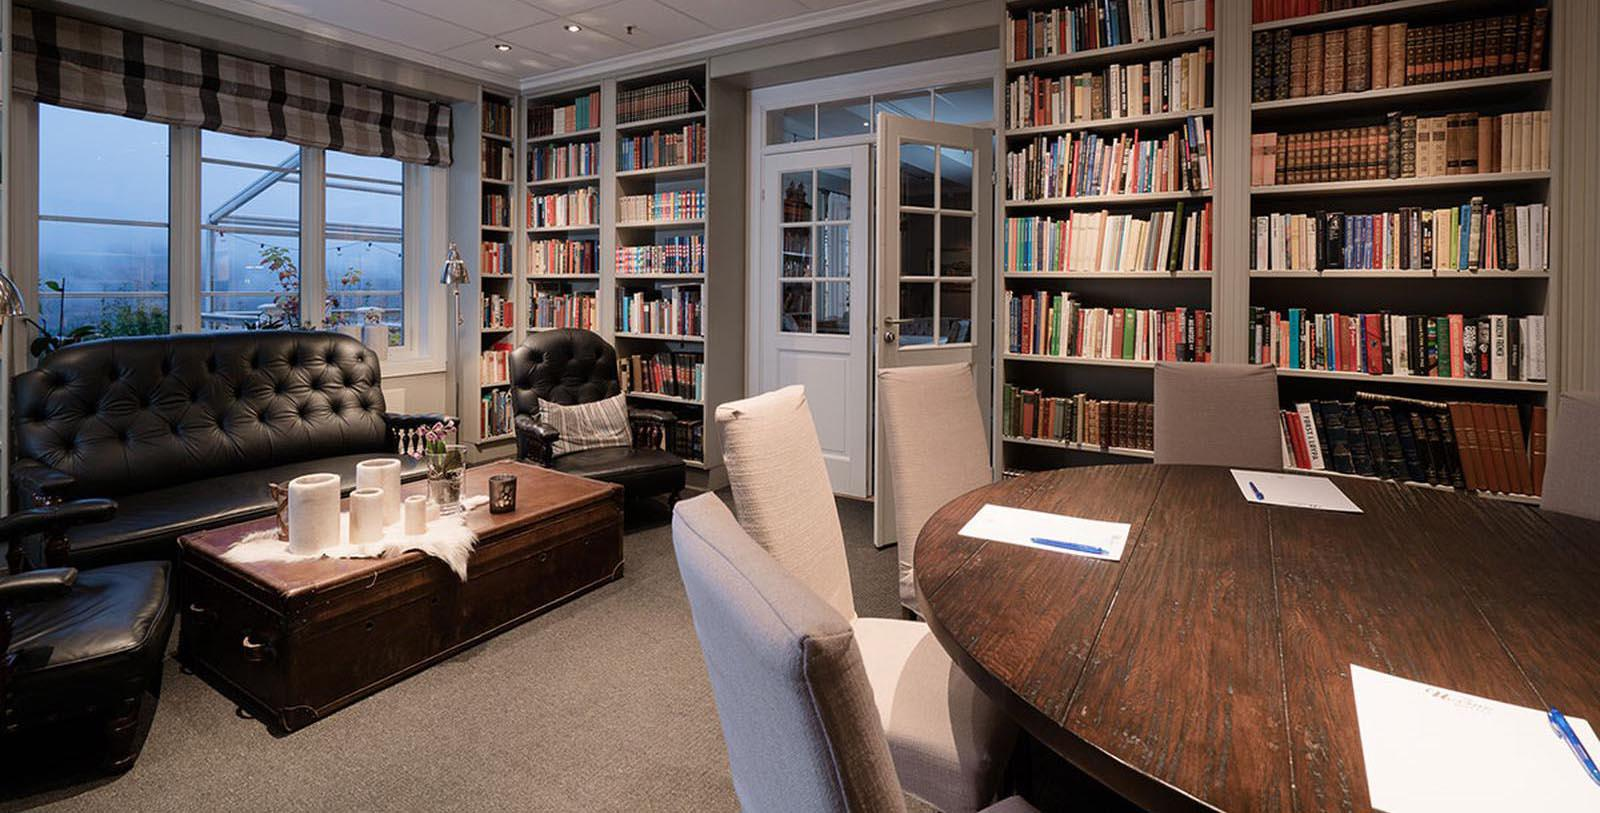 Image of Library Hotel Nermo Hotell & Apartments, 1442, Member of Historic Hotels Worldwide, in Oyer, Norway, Discover